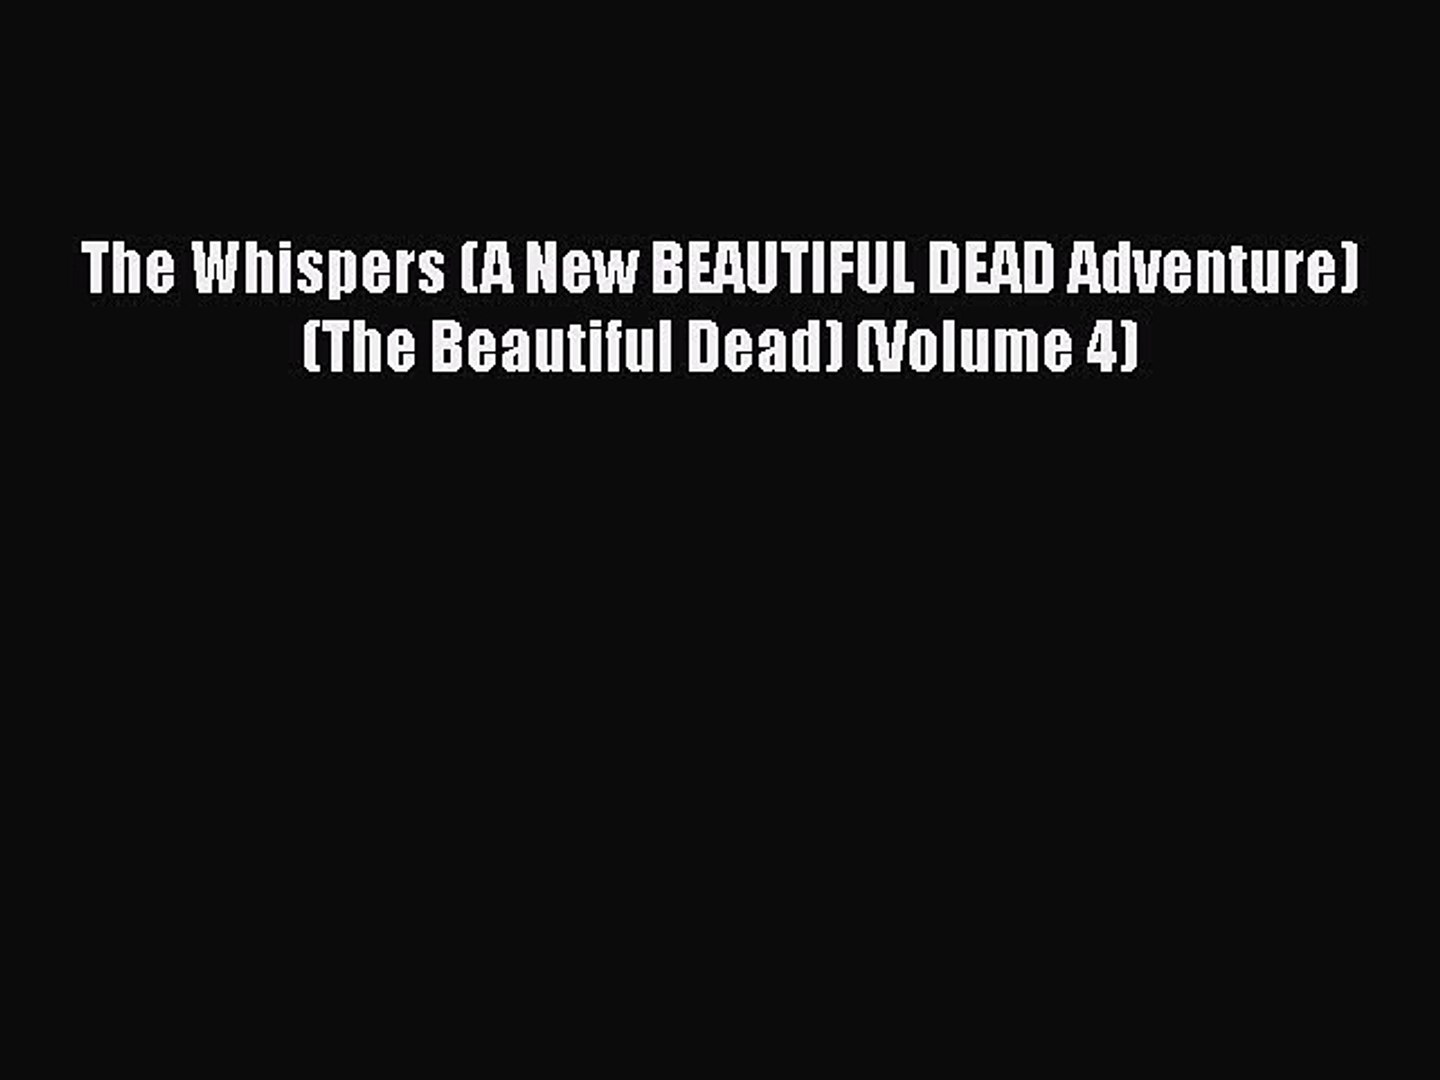 [PDF] The Whispers (A New BEAUTIFUL DEAD Adventure) (The Beautiful Dead) (Volume 4) [Download]